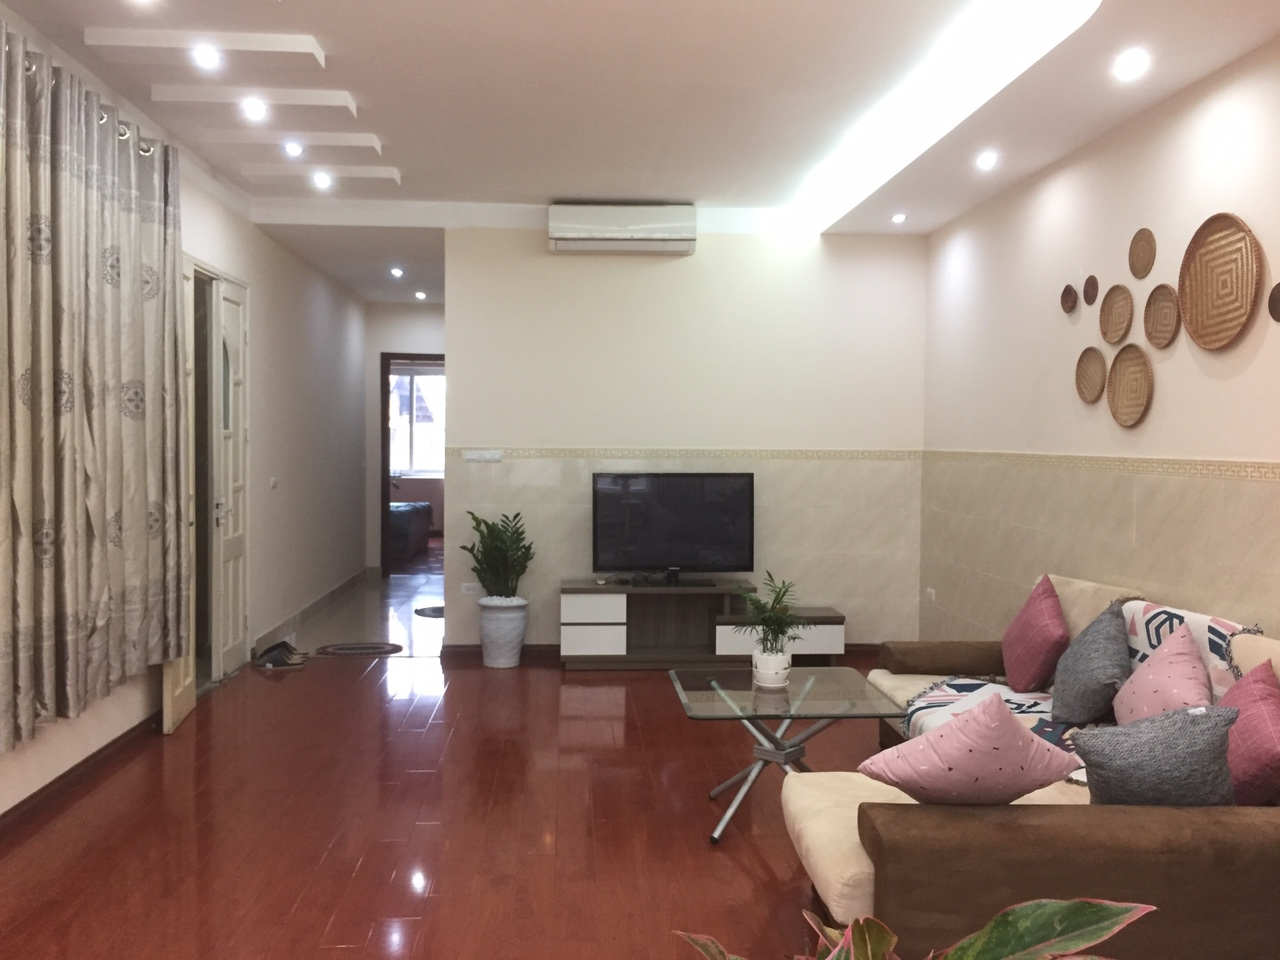 Large 2 bedroom apartment for rent in Lane 34, Au Co street